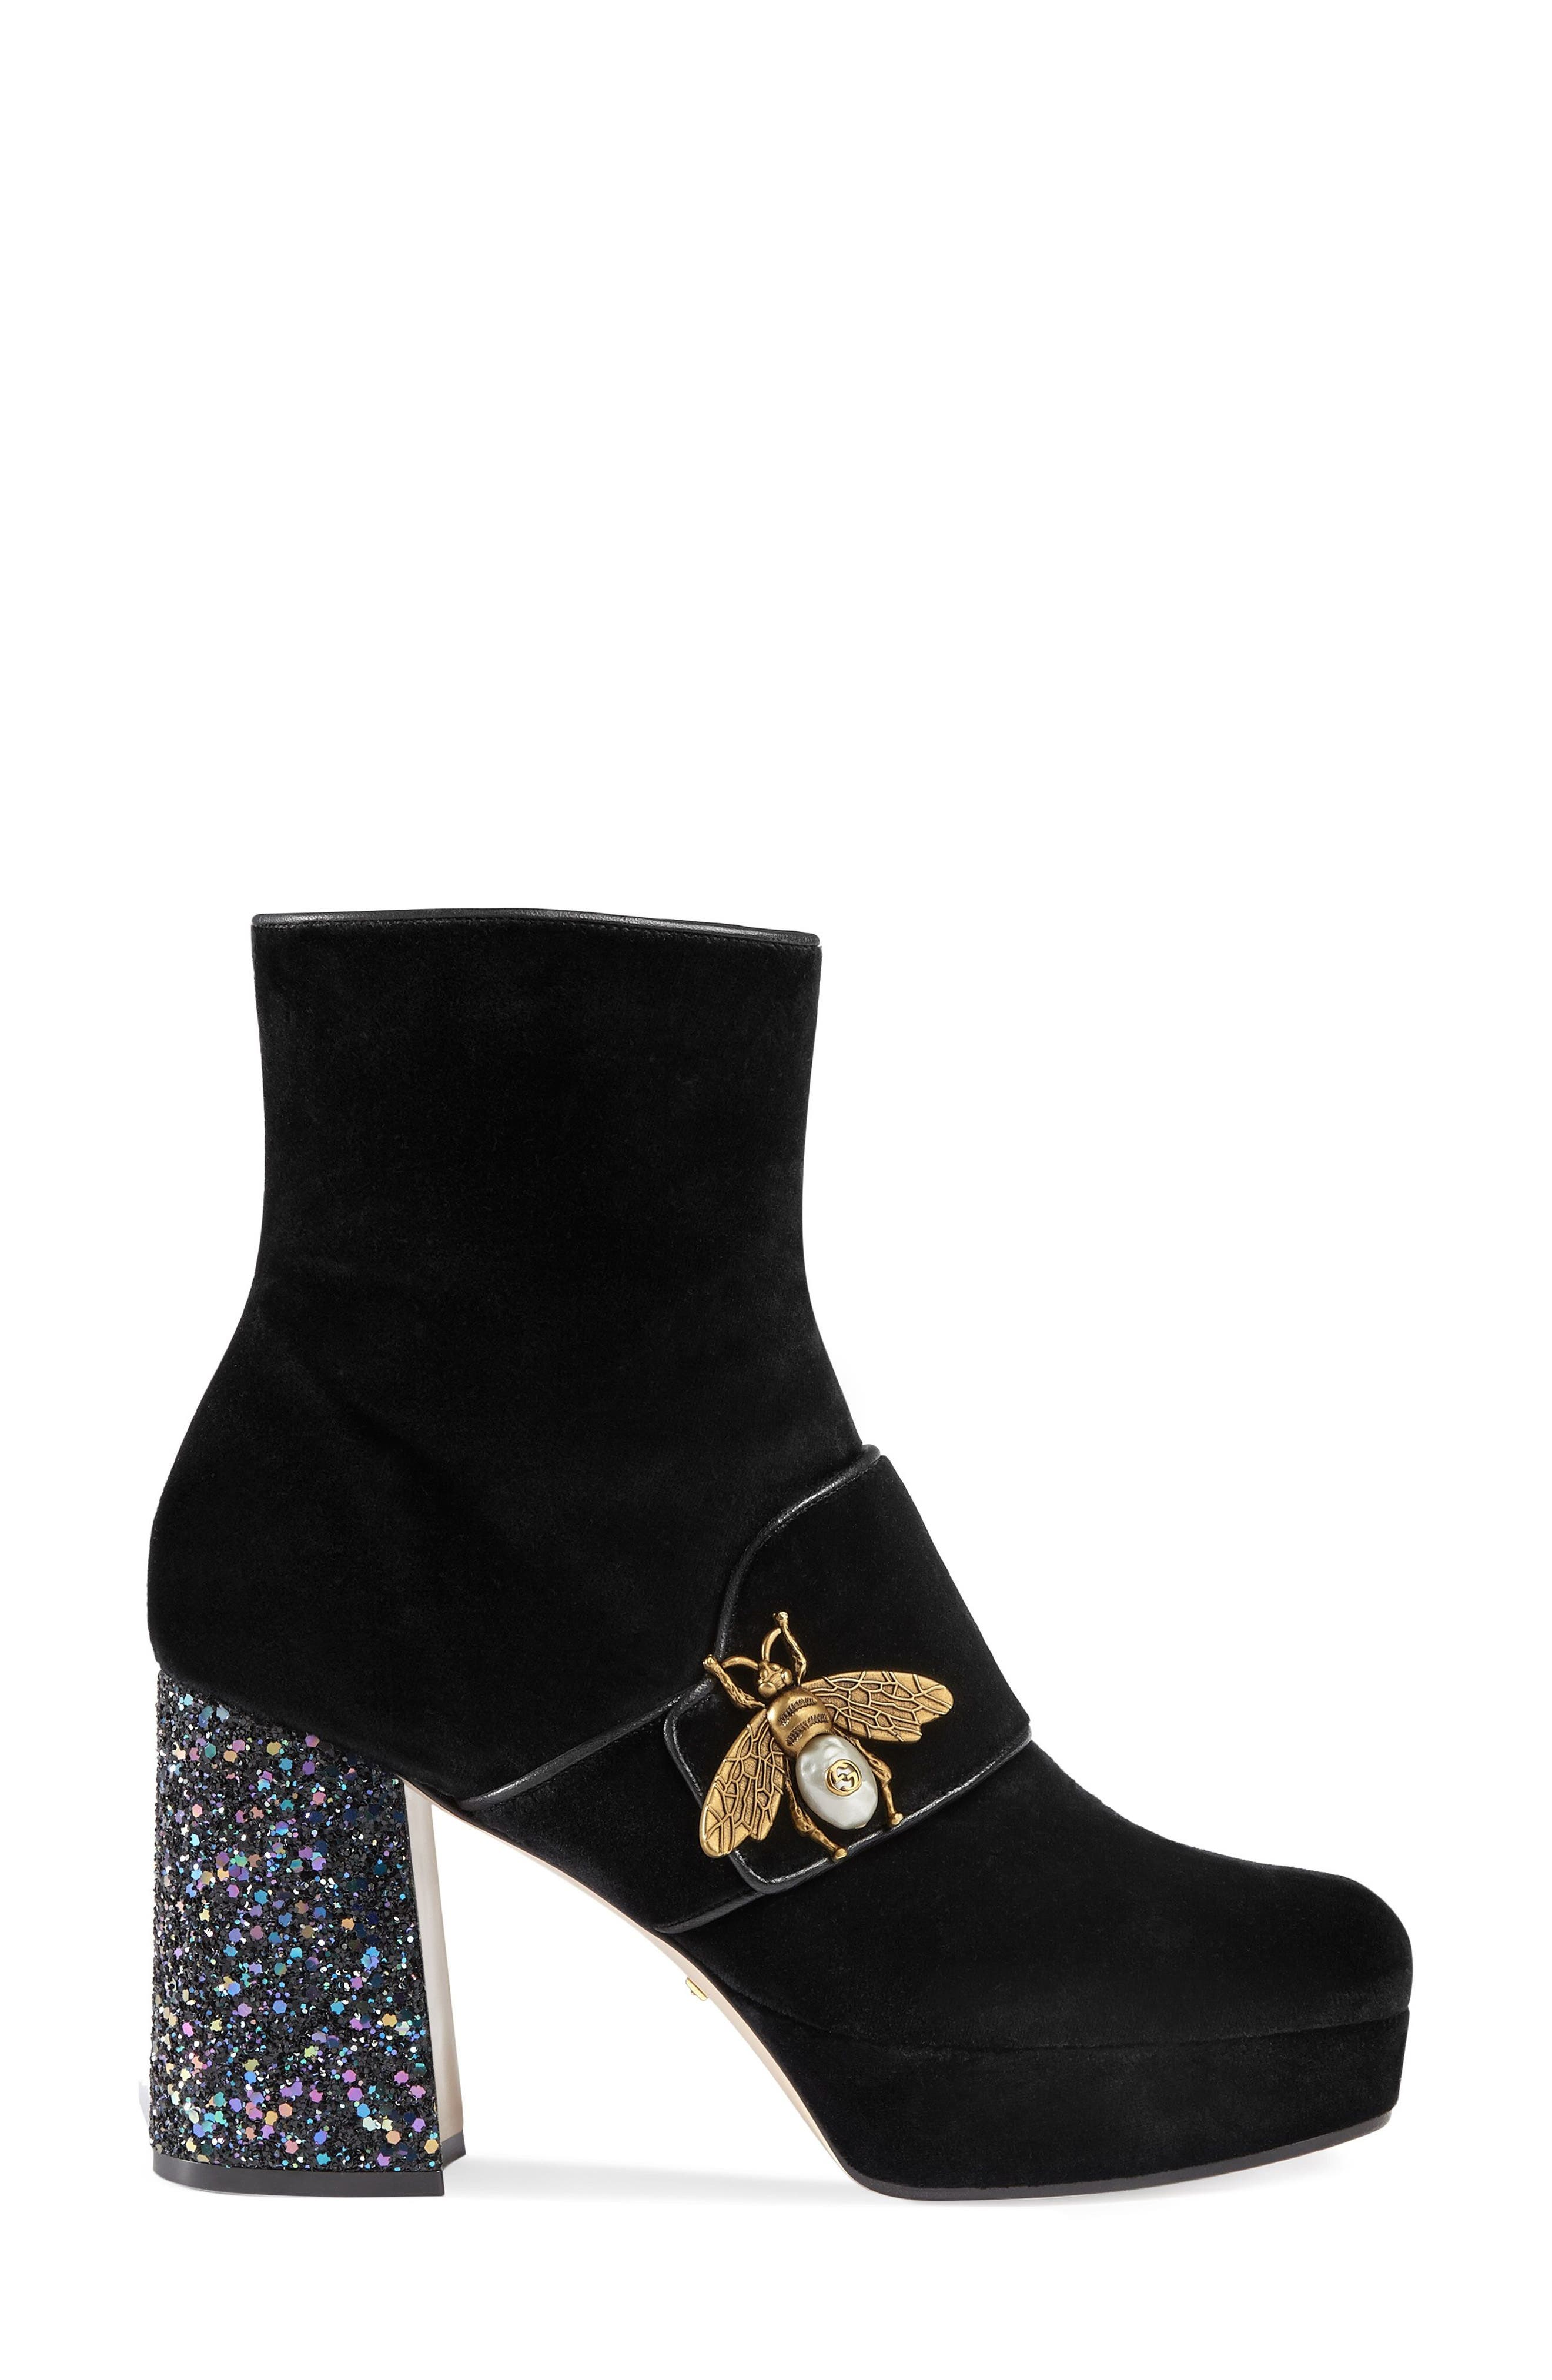 Alternate Image 1 Selected - Gucci Soko Glitter Bee Bootie (Women)